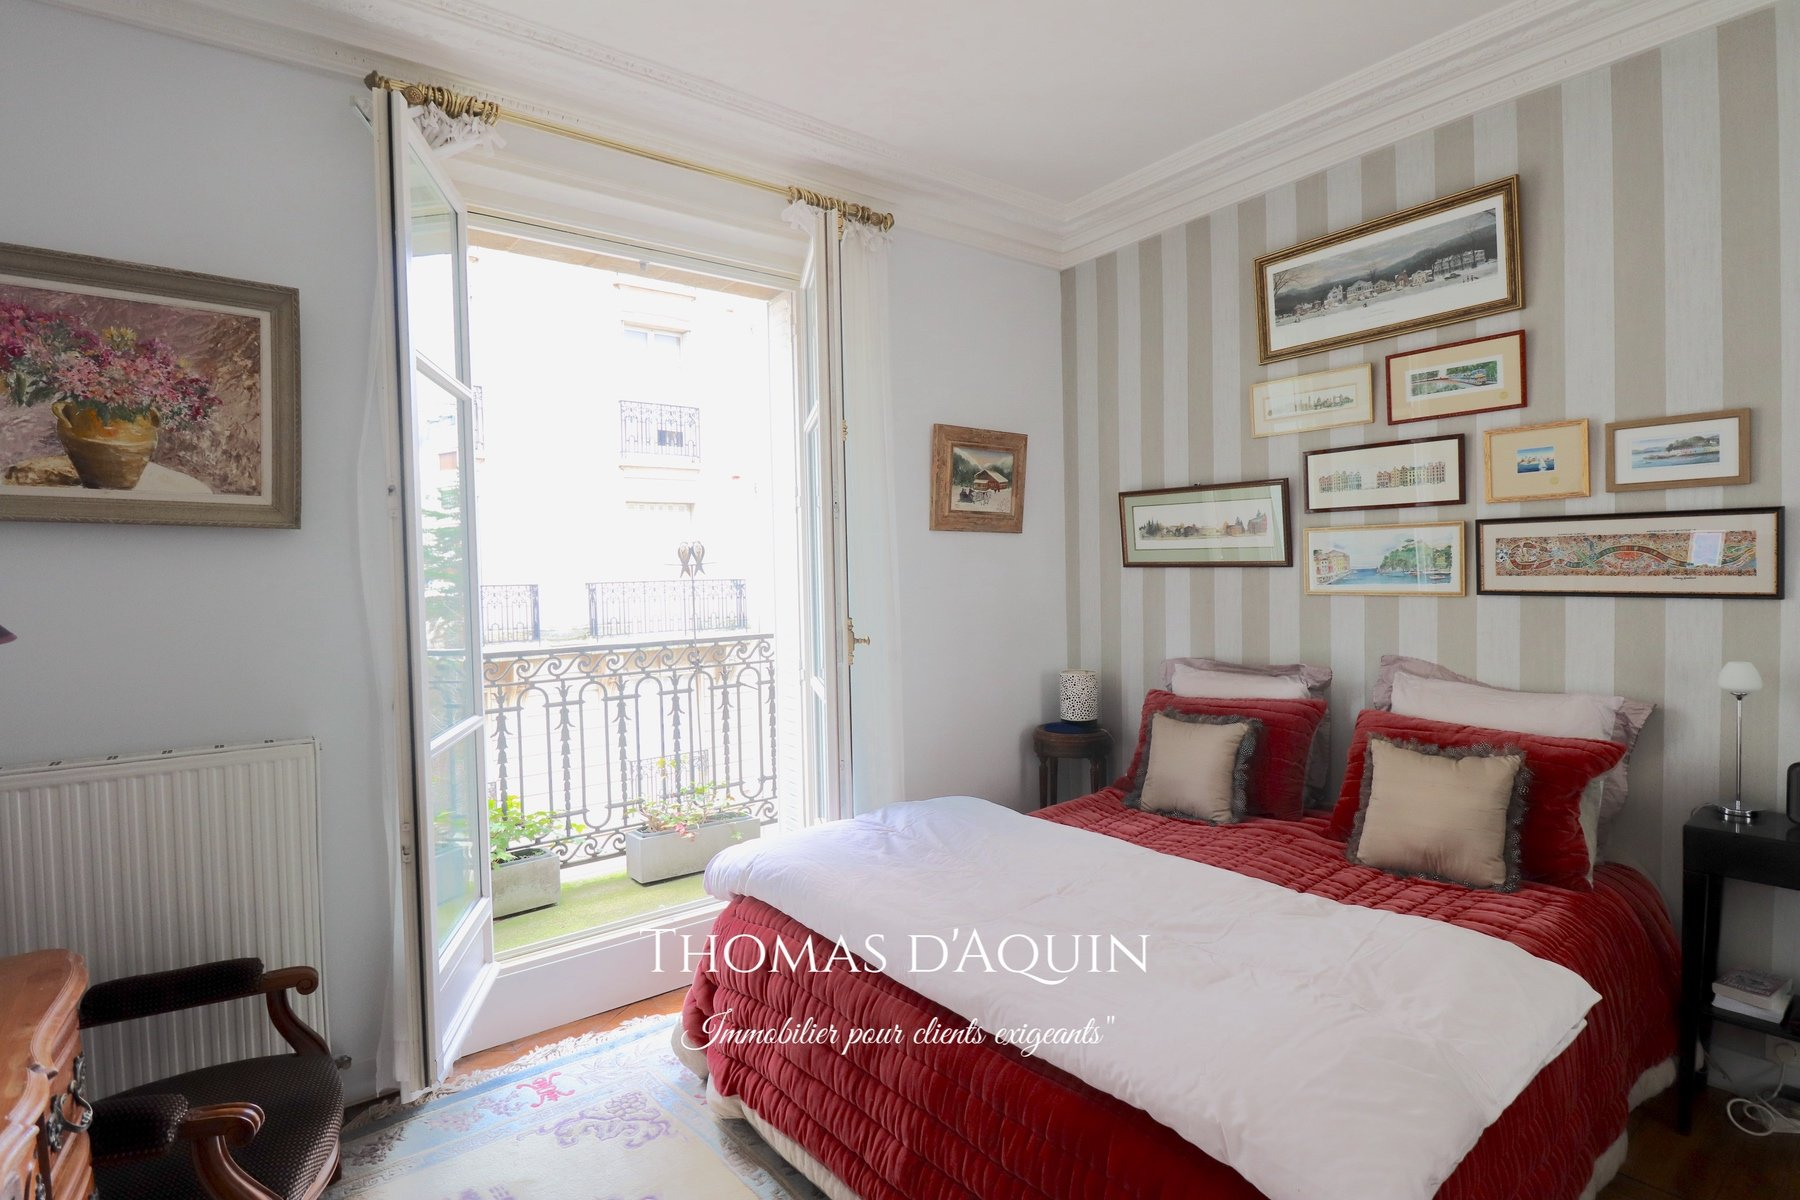 Sale Apartment - Paris 12th (Paris 12ème) Picpus